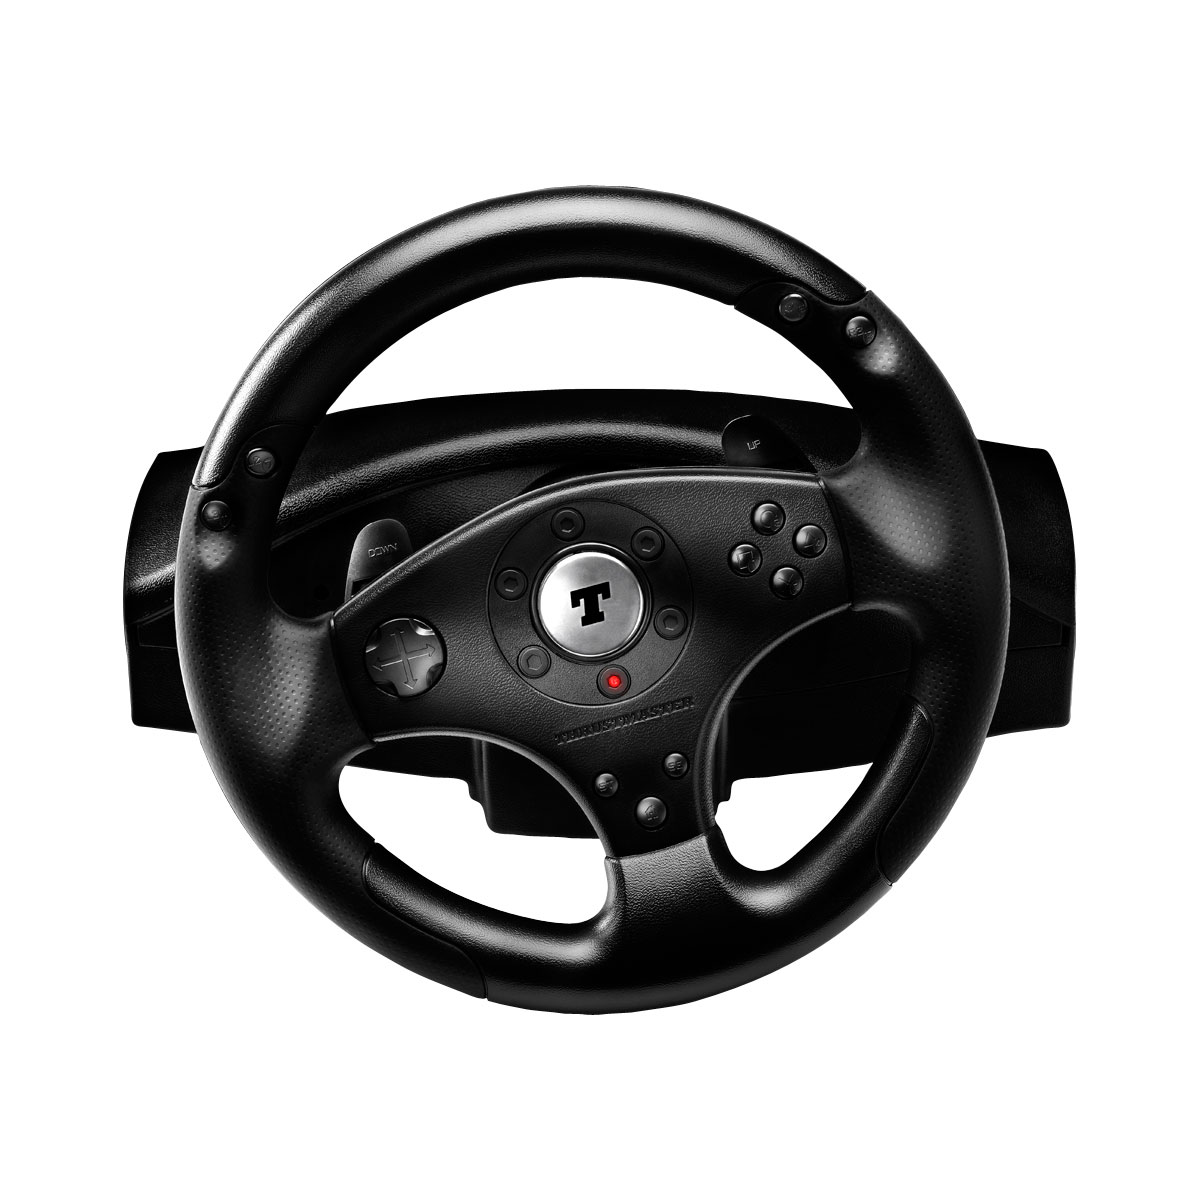 thrustmaster t100 force feedback racing wheel volant pc thrustmaster sur. Black Bedroom Furniture Sets. Home Design Ideas